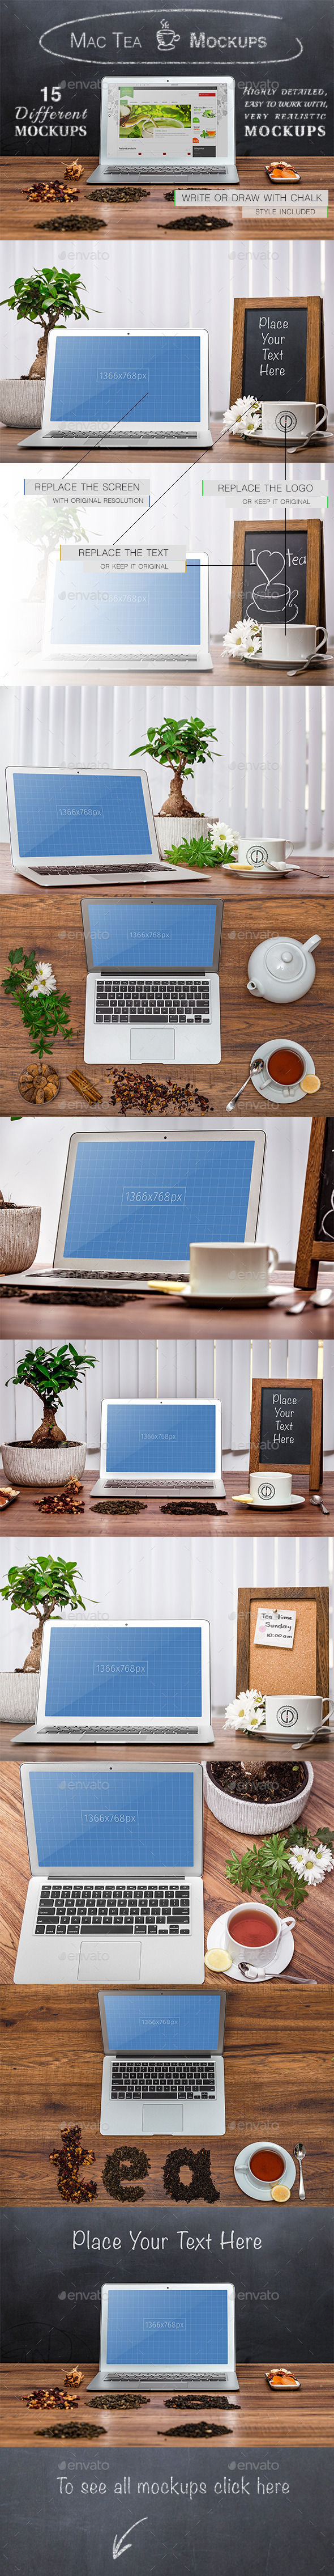 15 Mac-Tea Mockups - Laptop Displays